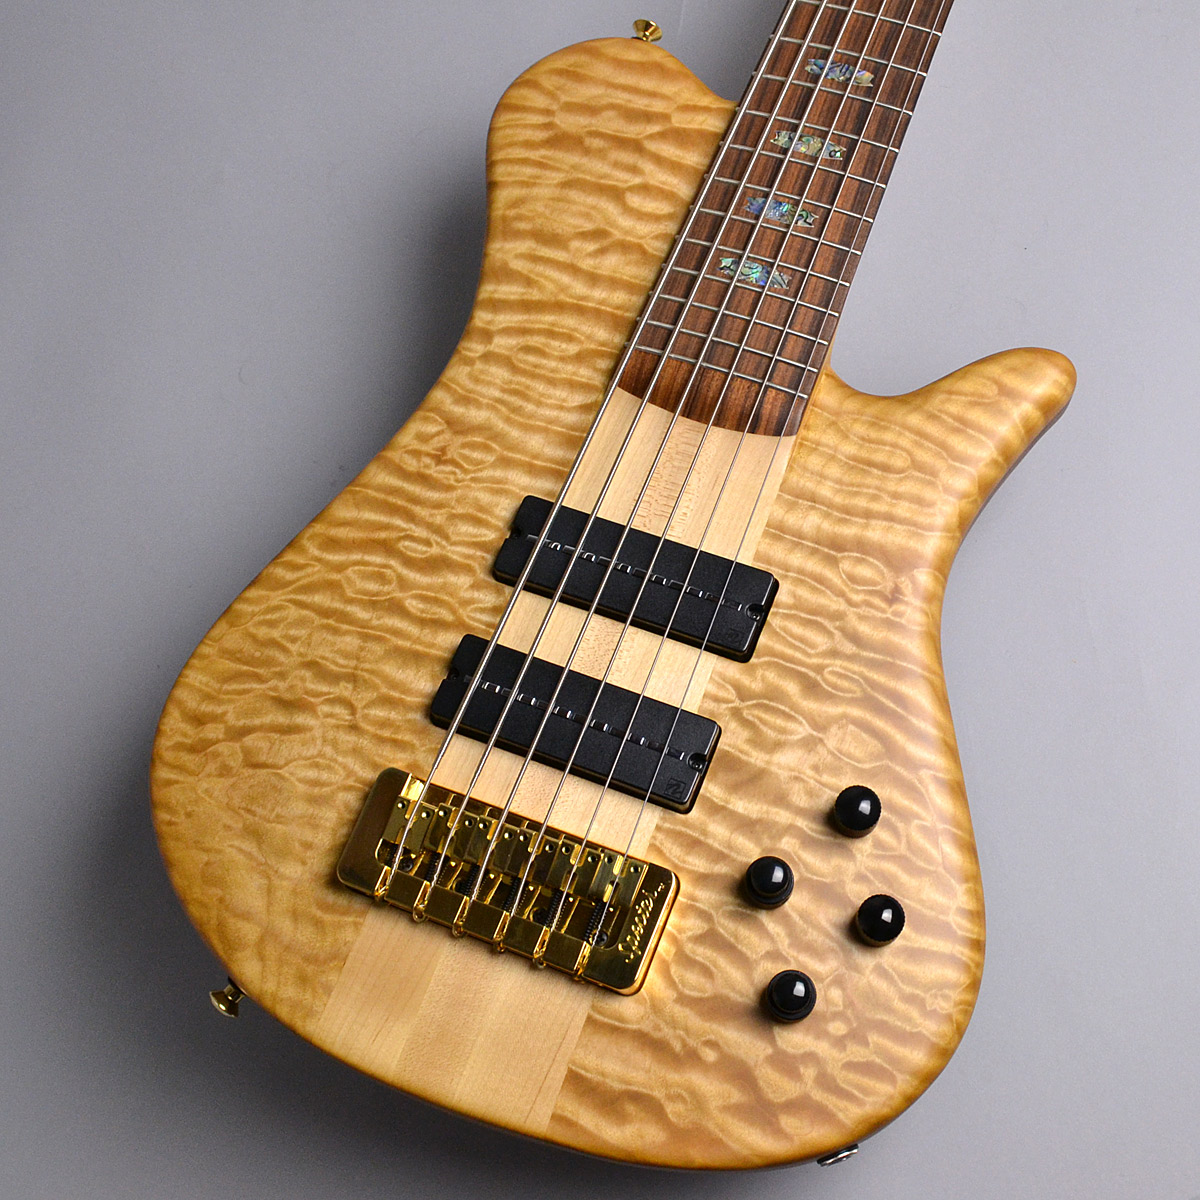 USA NS6XL SC 5A Quilted Maple Topのボディトップ-アップ画像